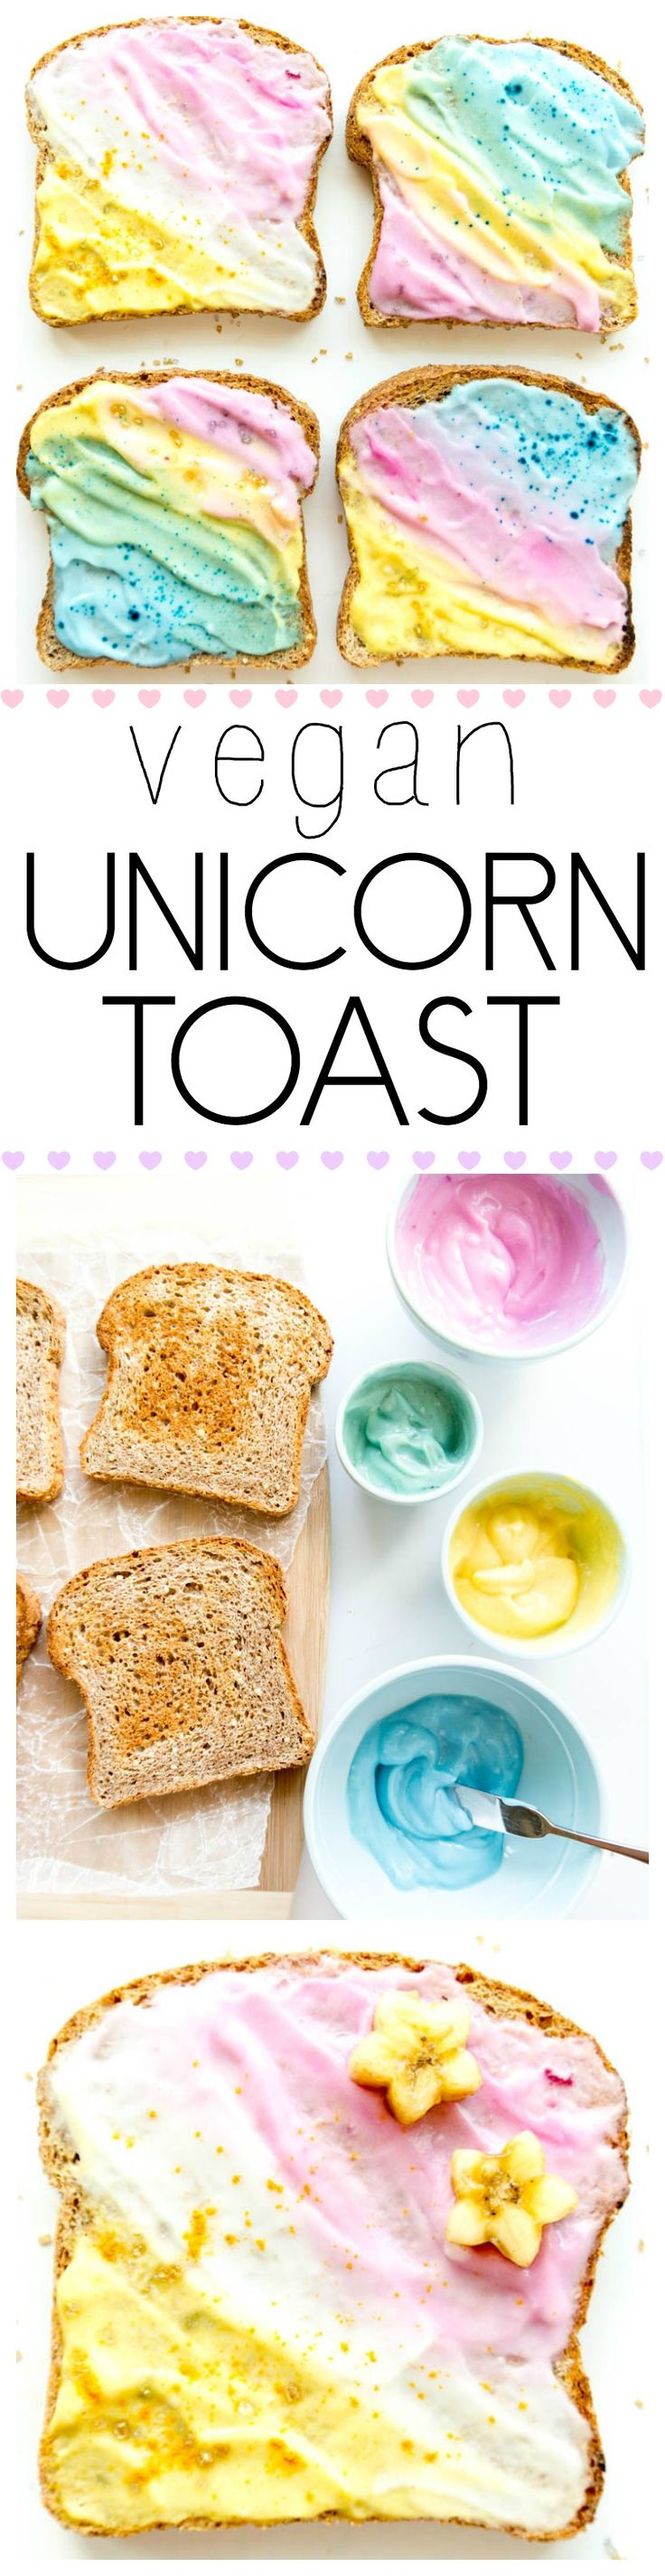 Unicorn Toast. Vegan with all natural food coloring options, from actual food! Swirled with coconut milk yogurt or dairy free cream cheese. Creative, fun and healthy breakfast or snack! Make gluten free with gluten free bread! #unicorn #toast #vegan